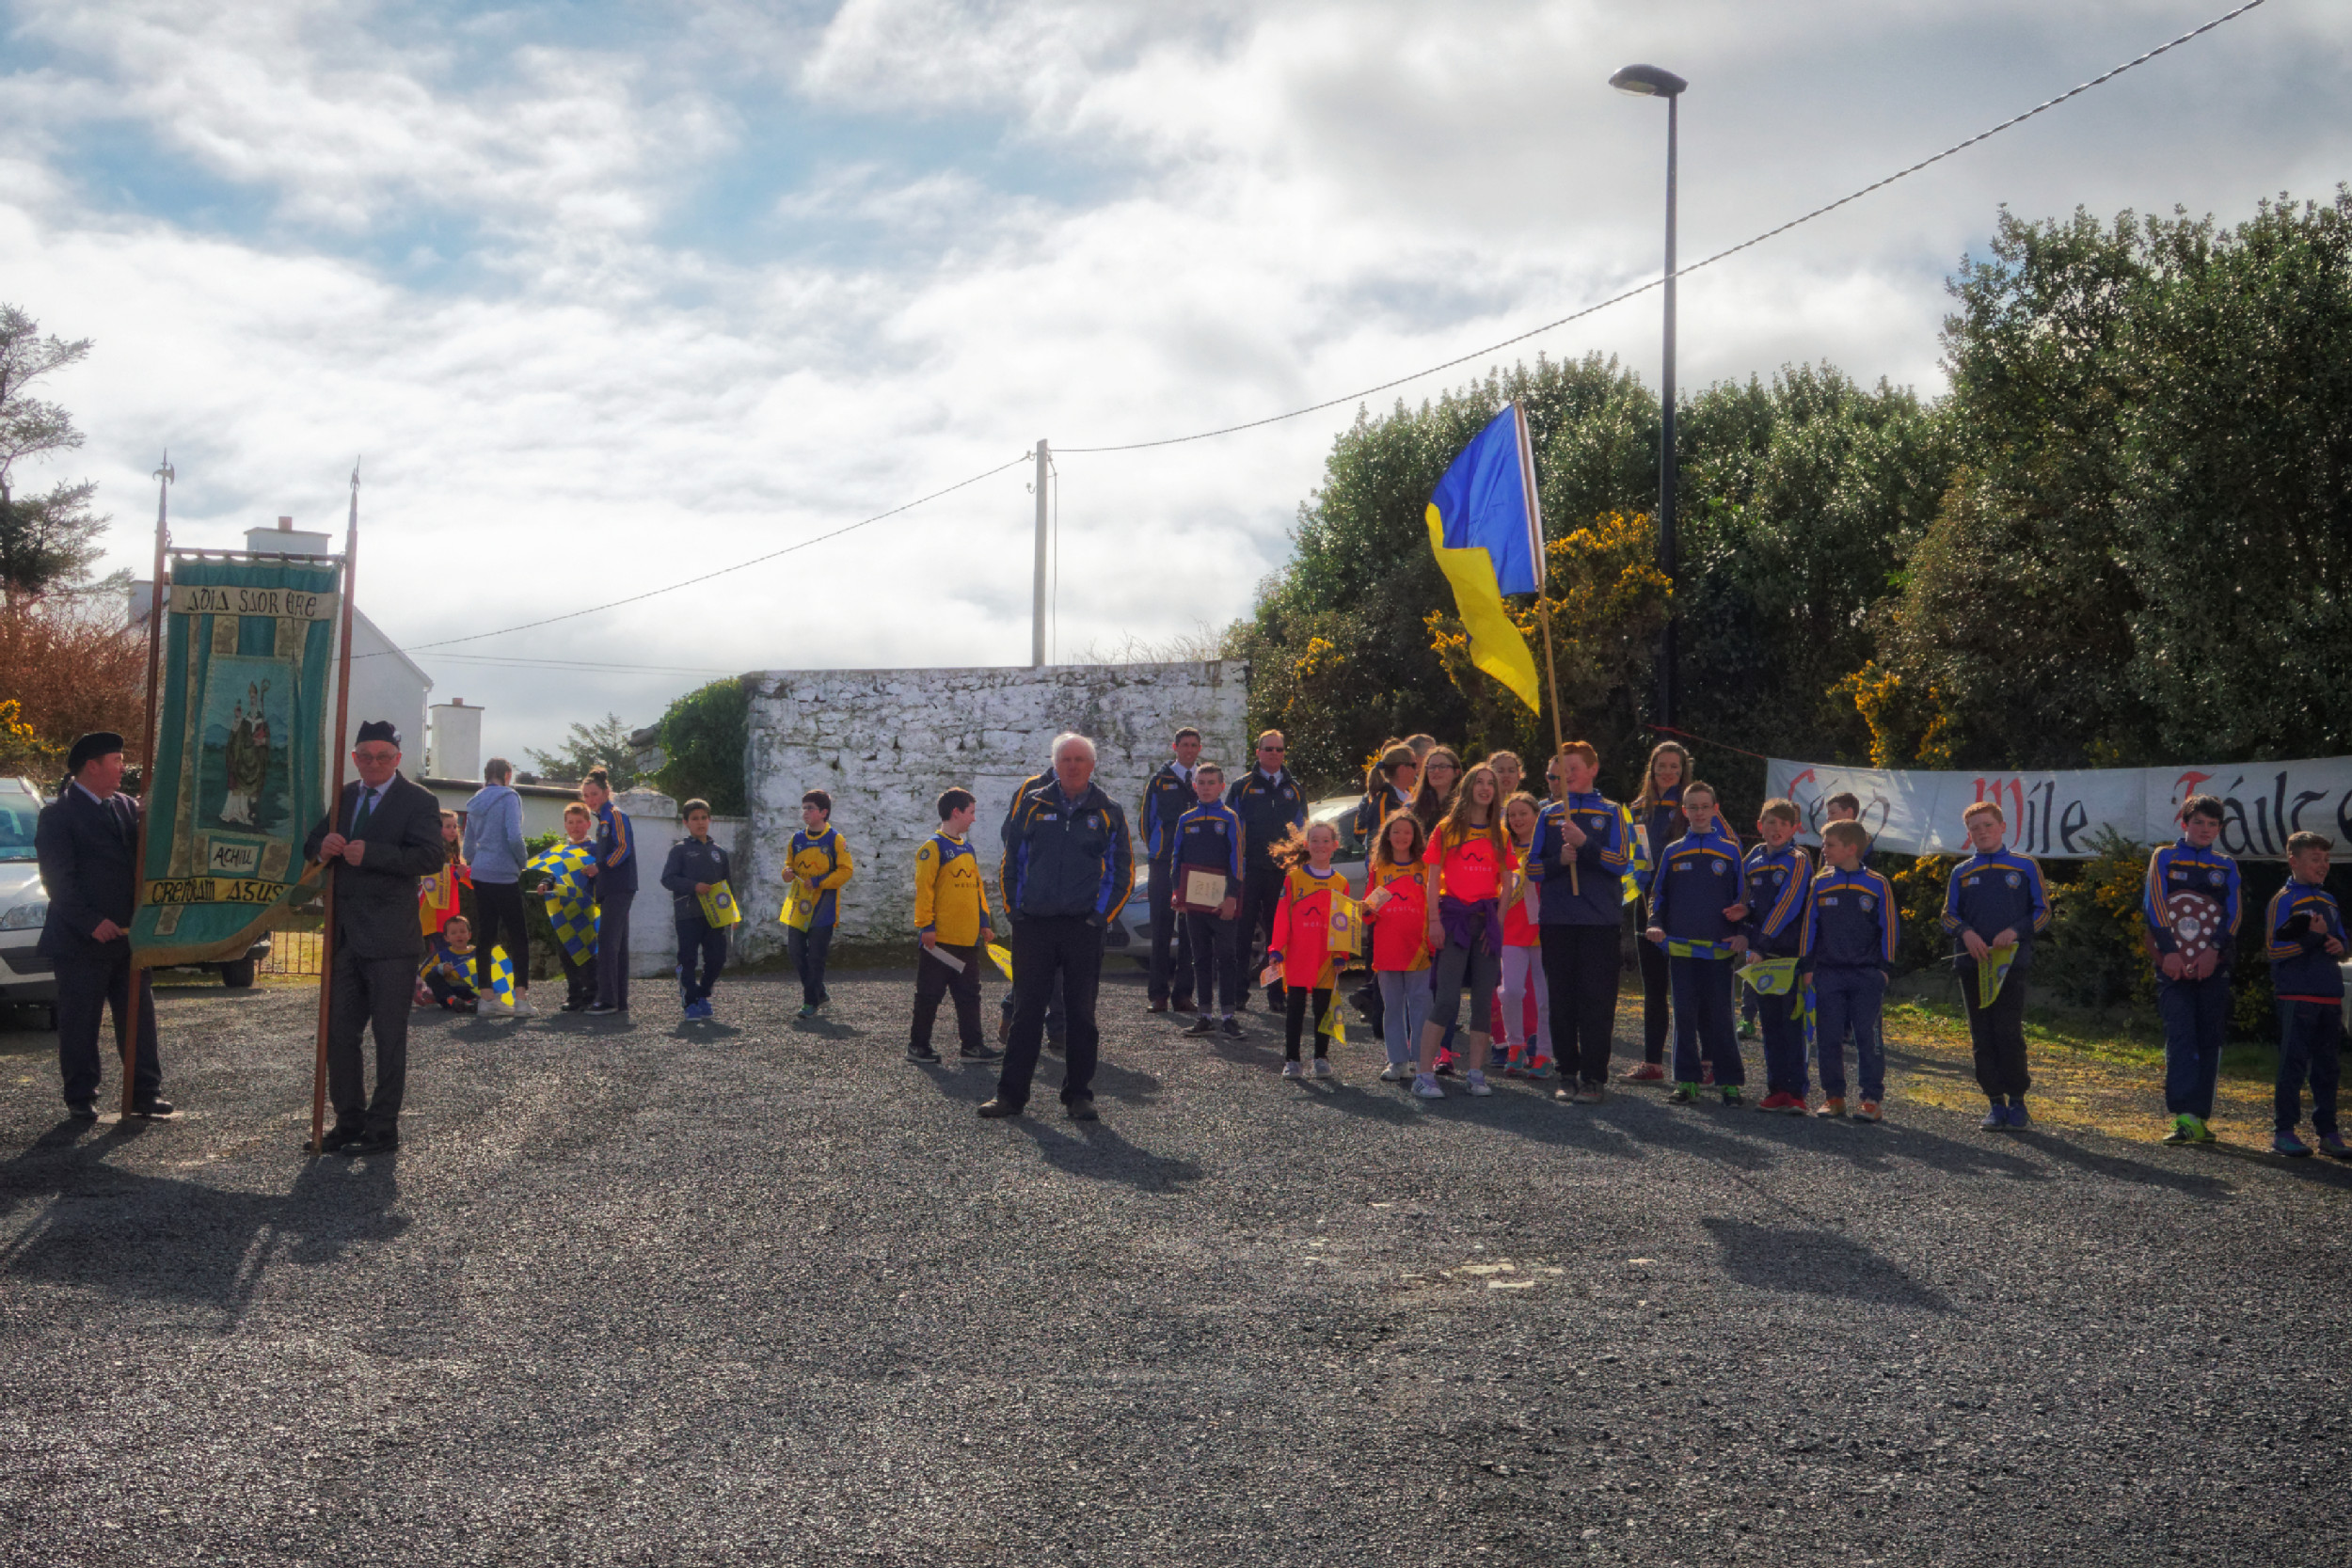 20160320131542-ie-achill-sound_parade-_DxO_13in_DxO96